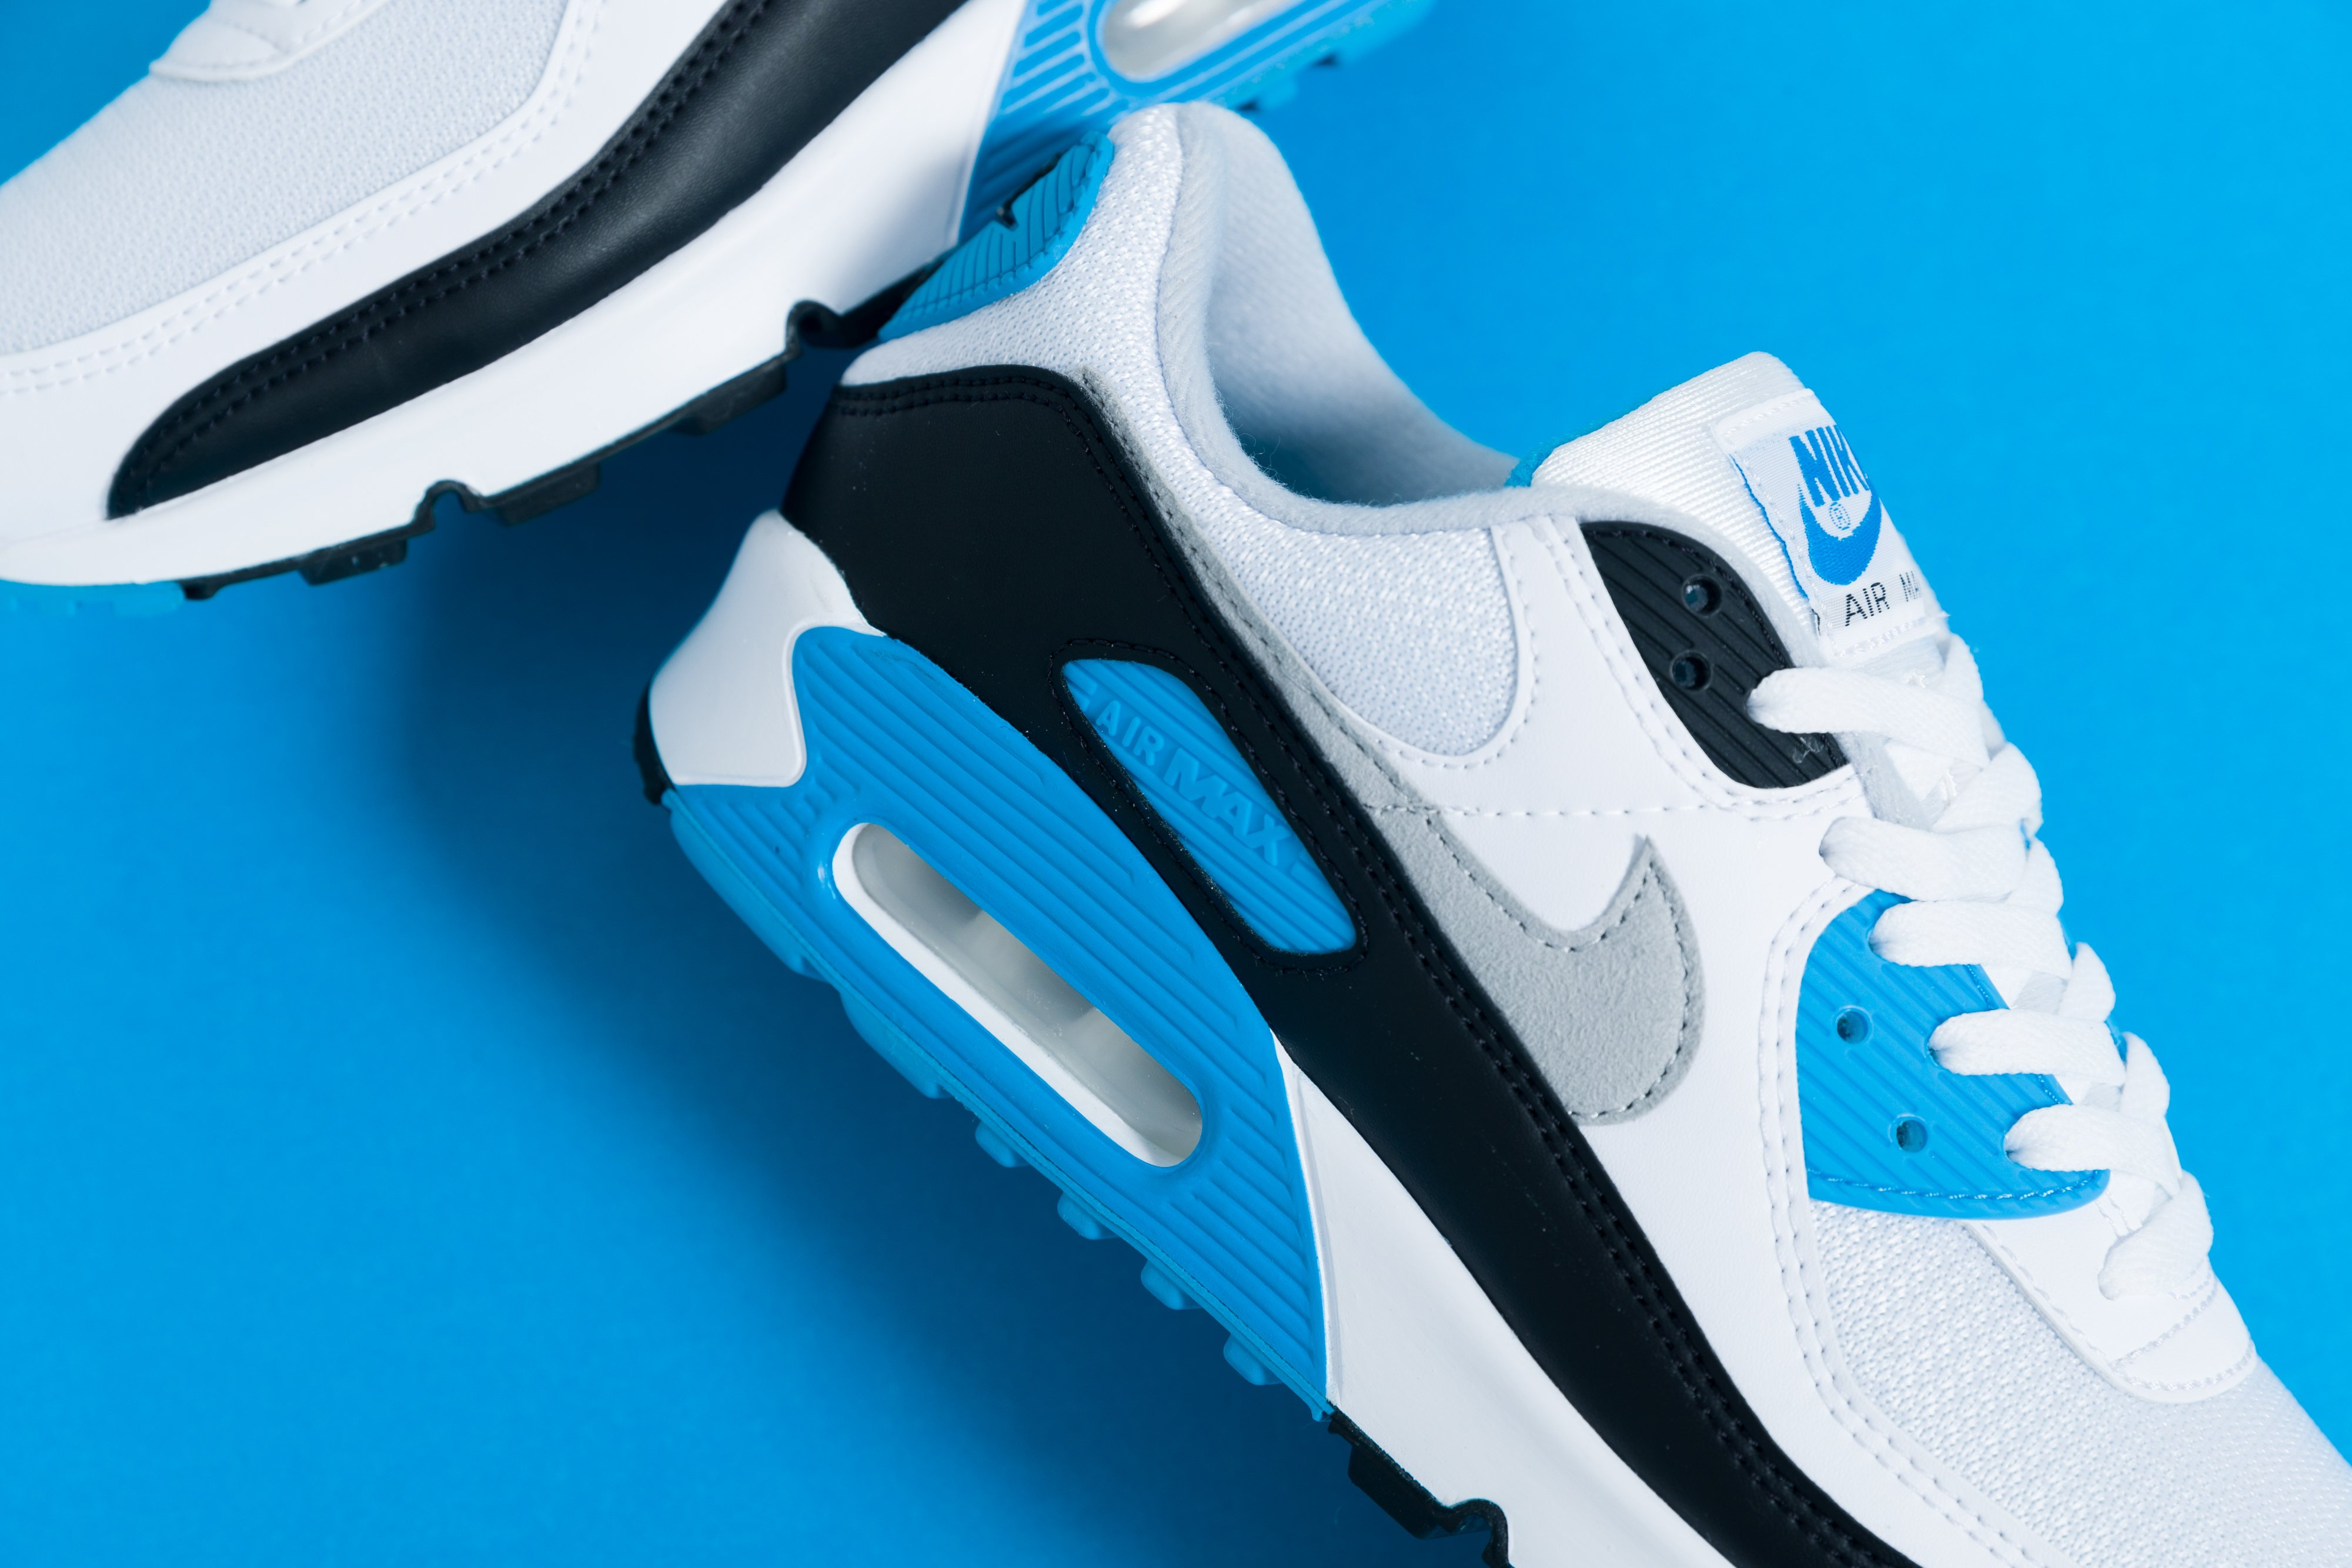 Nike Air Max III (Air Max 90) 'Laser Blue'   Up There